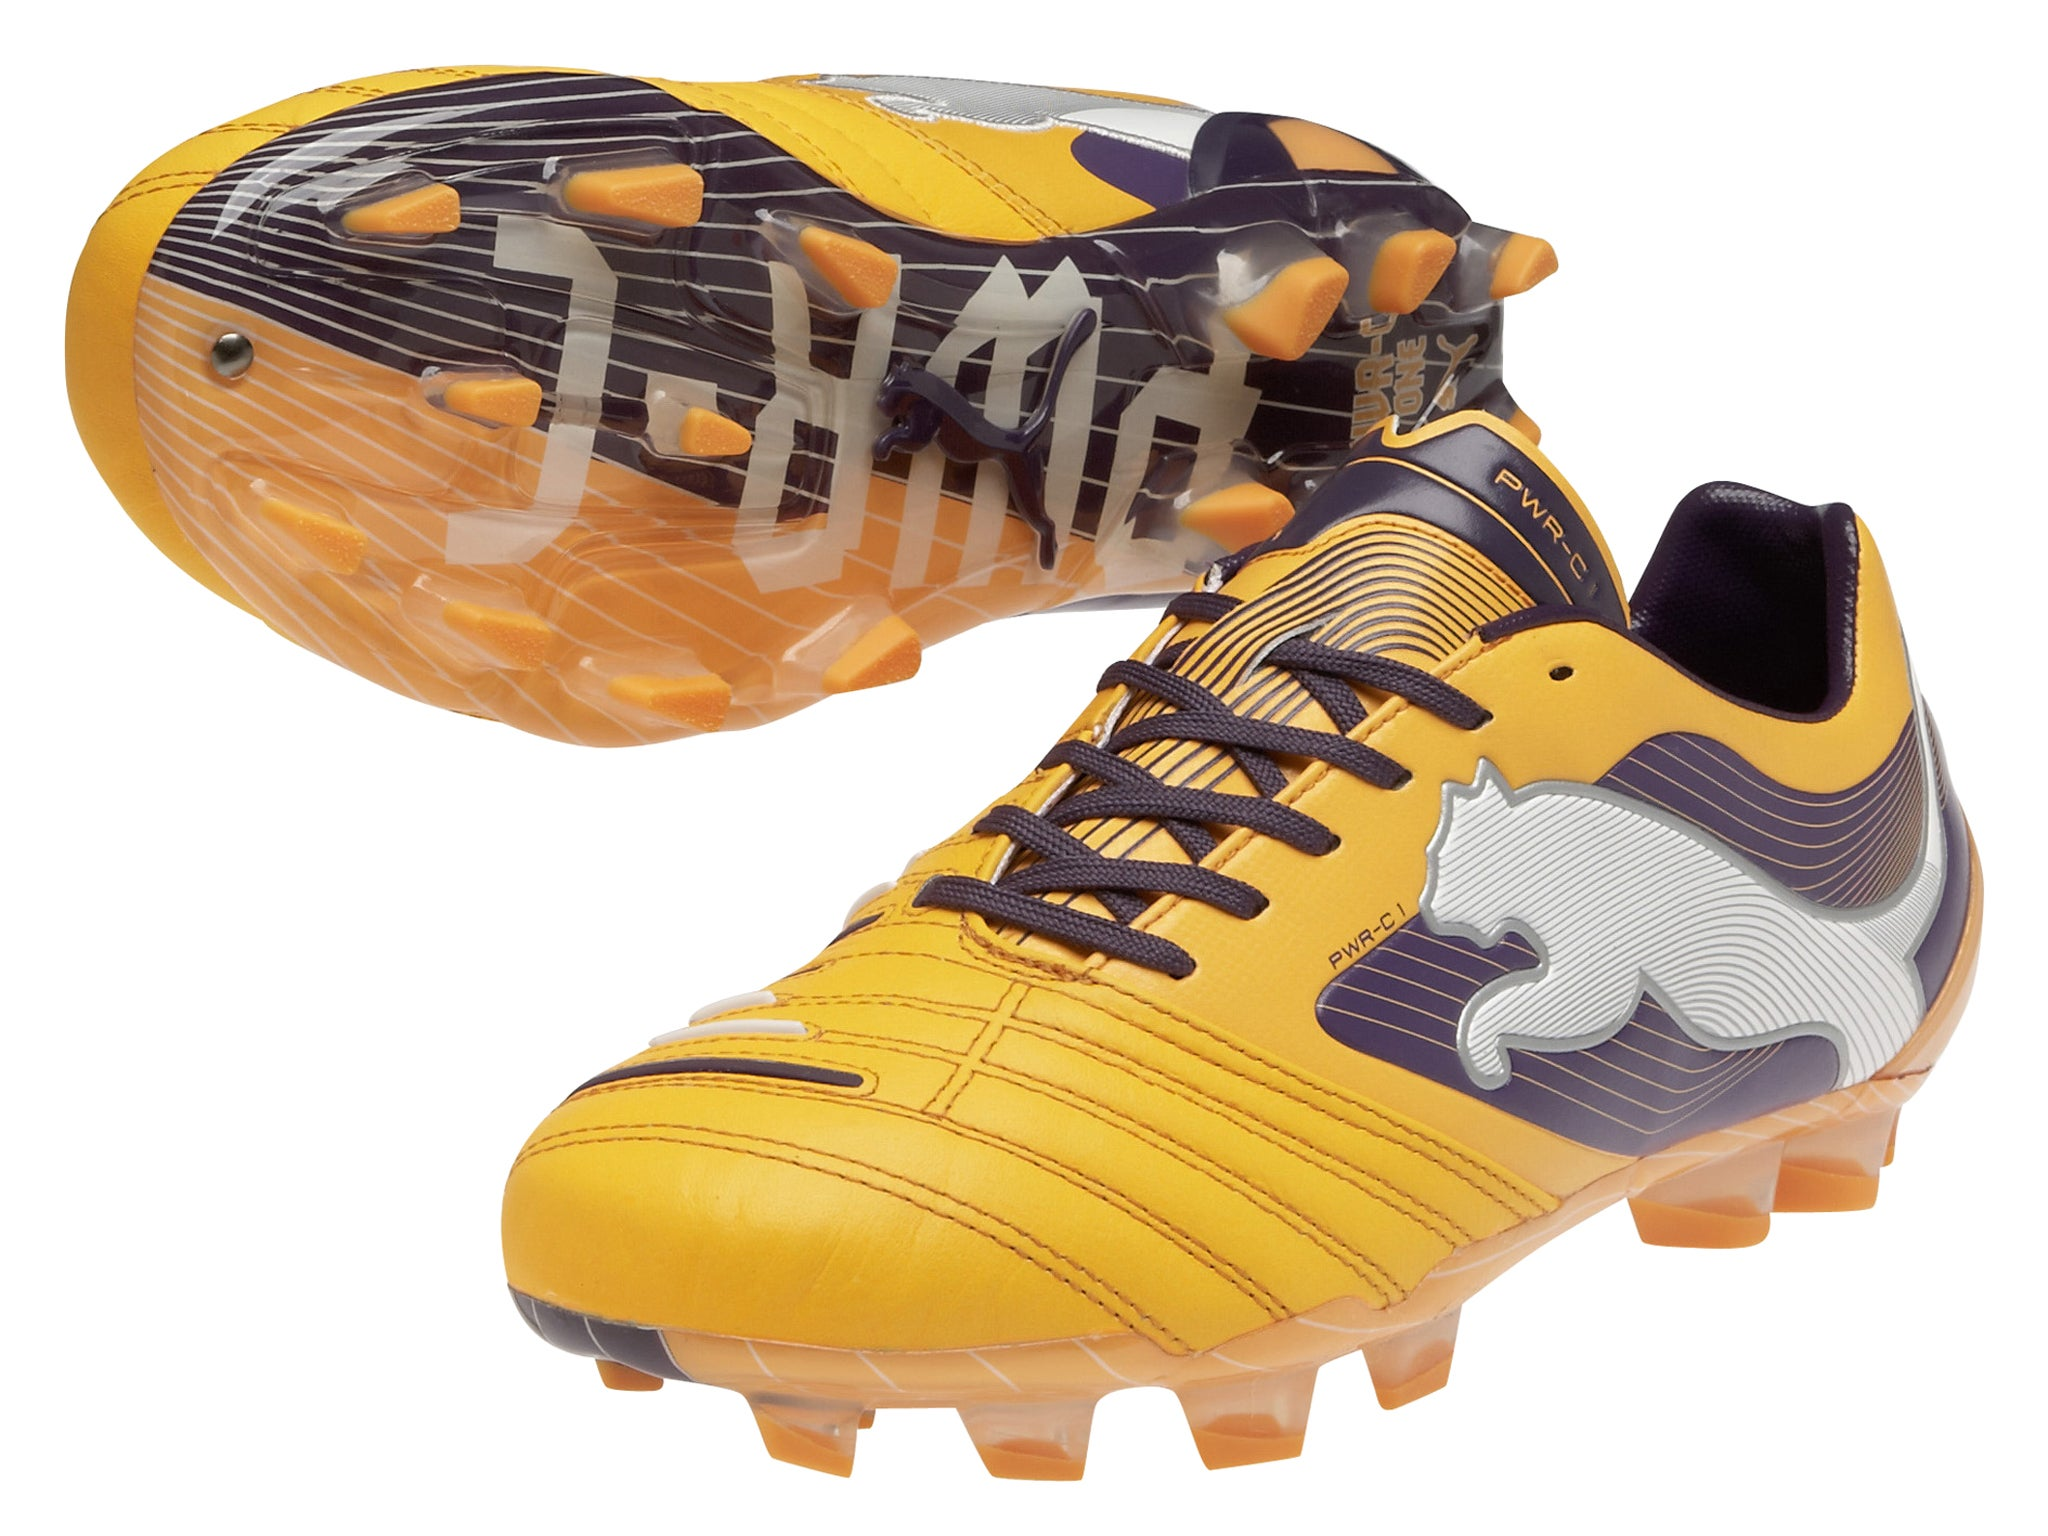 7e75e6115 Kick off: 10 best football boots 2013/14 | The Independent